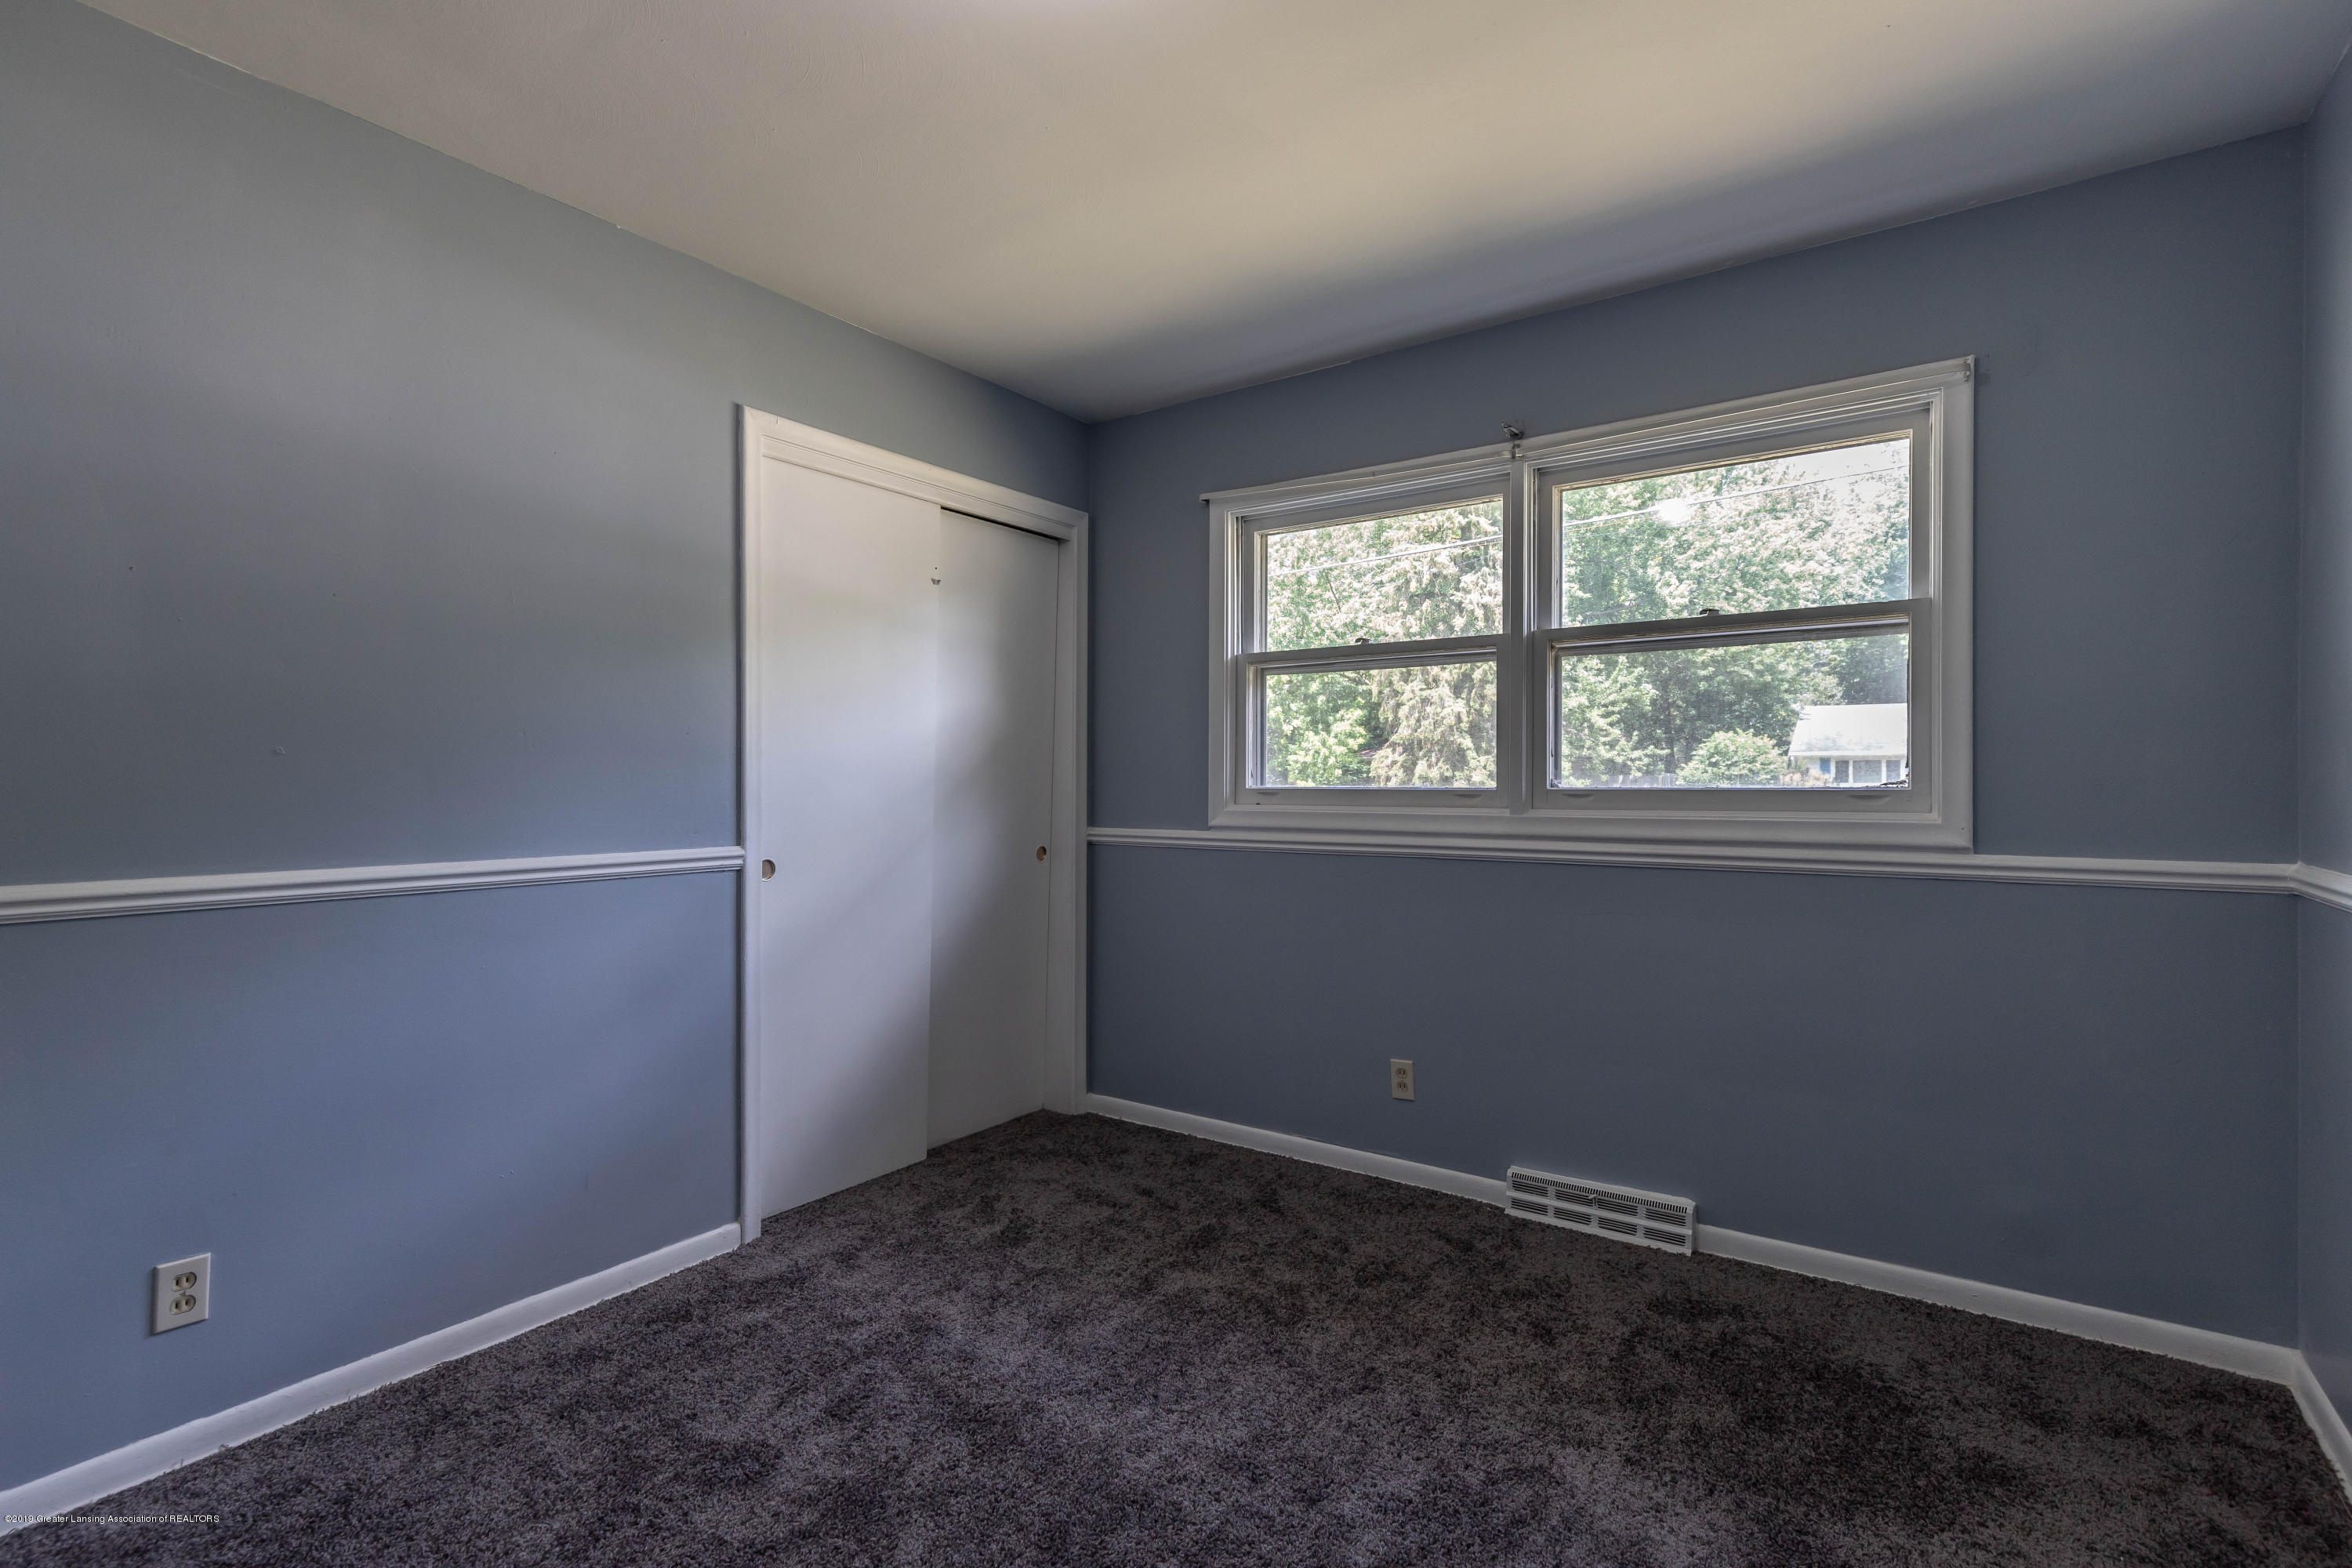 1529 Birchwood Dr - bedroom 2 - 18